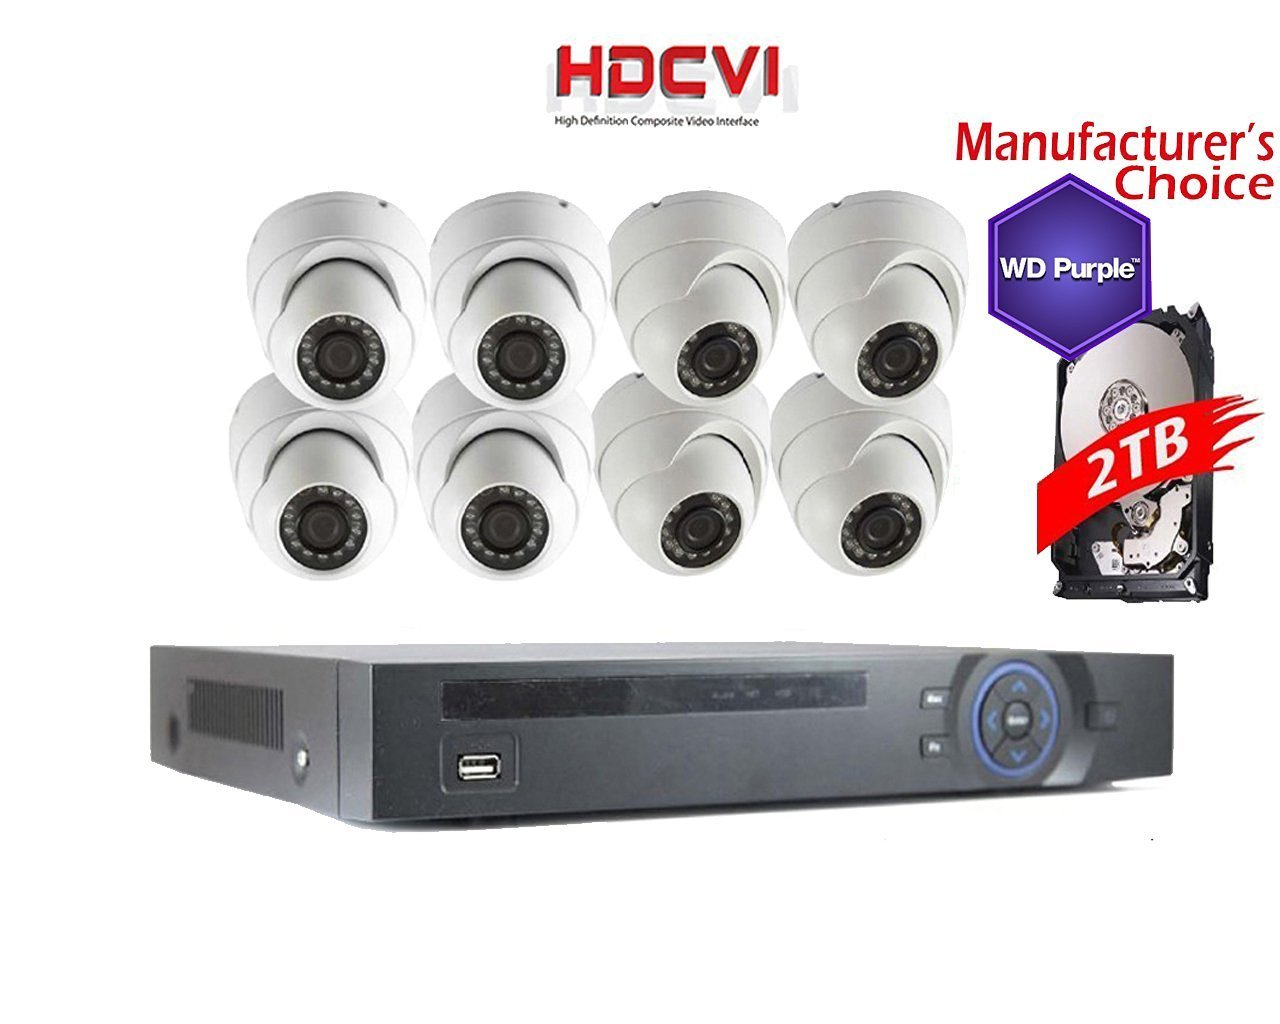 iCare 1080P Package: 8CH HDCVI DVR with 2TB WD Purple HDD Pre-installed + 8x 2MP IR Dome Camera,2 years warranty, Local Support